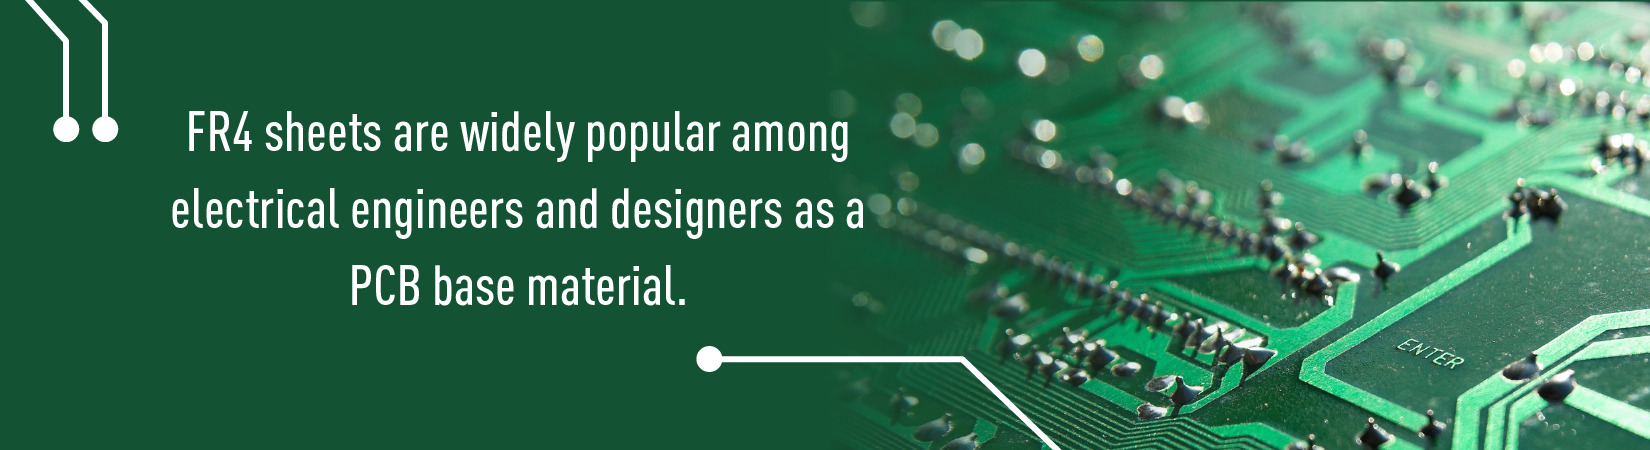 FR4 sheets are widely popular among electrical engineers and designers as a PCB base material